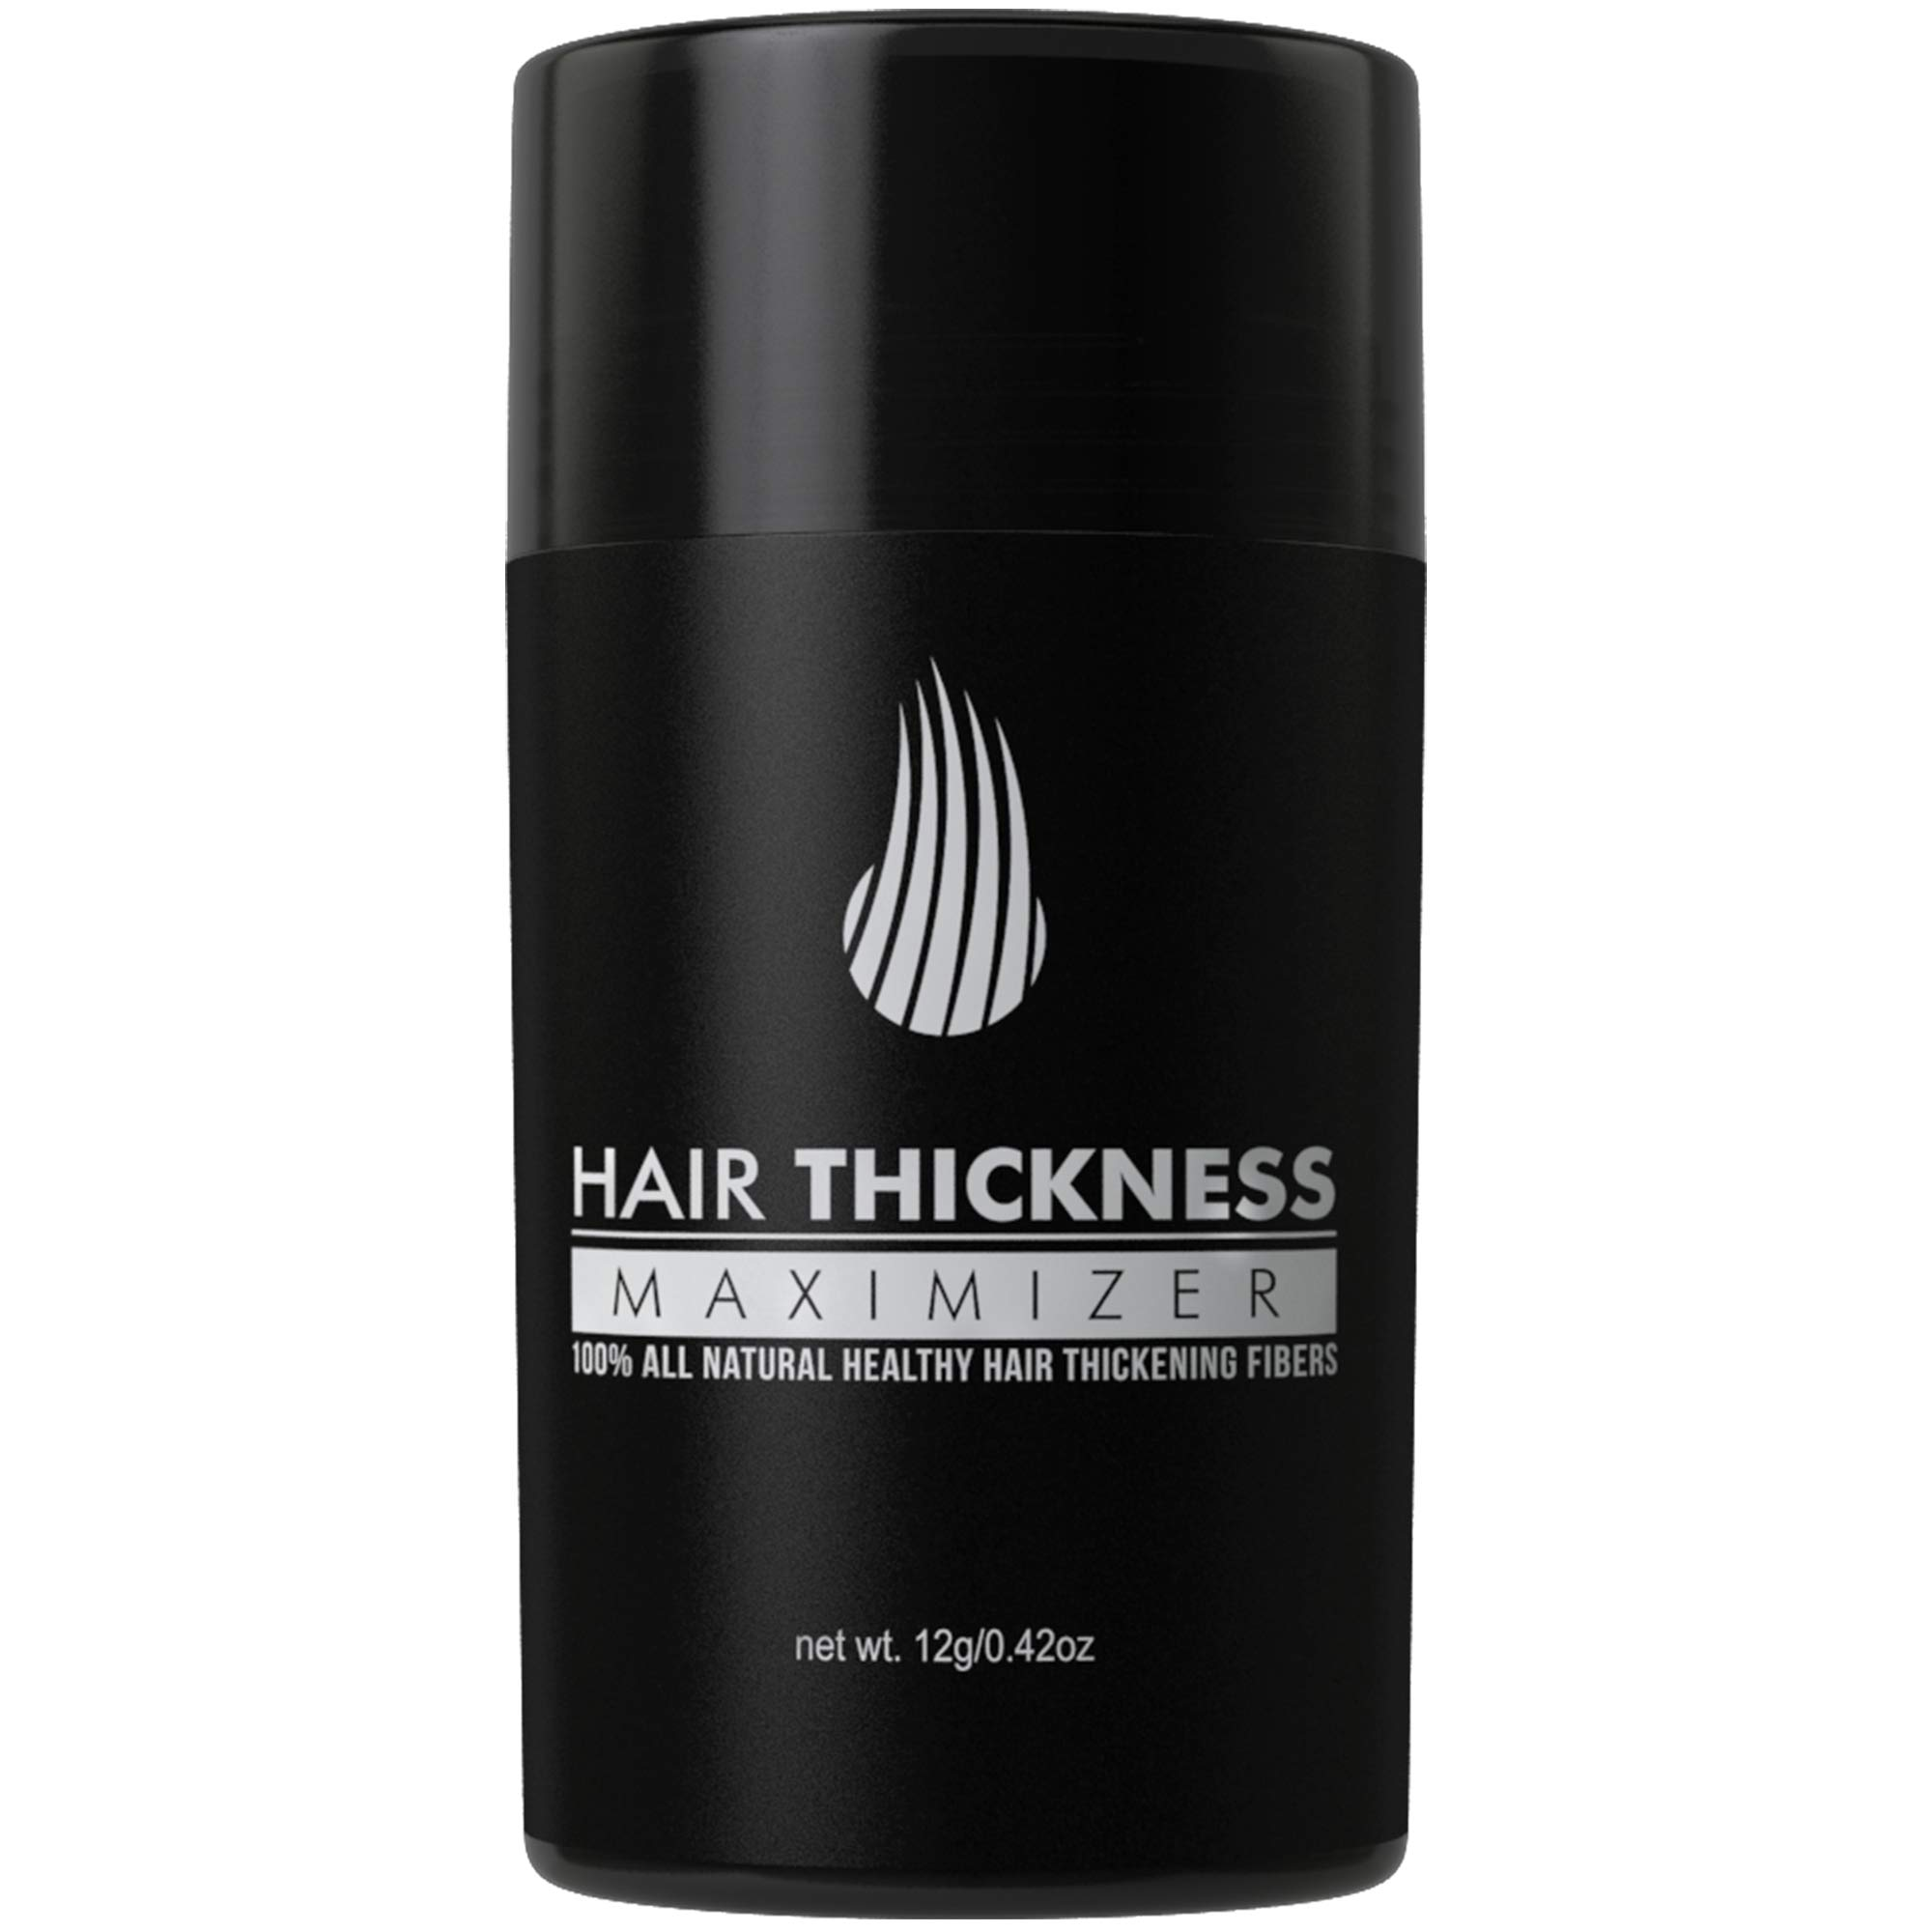 Hair Thickness Maximizer 2.0 - Safer Than Keratin Hair Building Fibers With 2nd Gen All Natural Plant Based Hair Loss Concealing Fillers For Instant Thickening of Thinning or Balding Hair